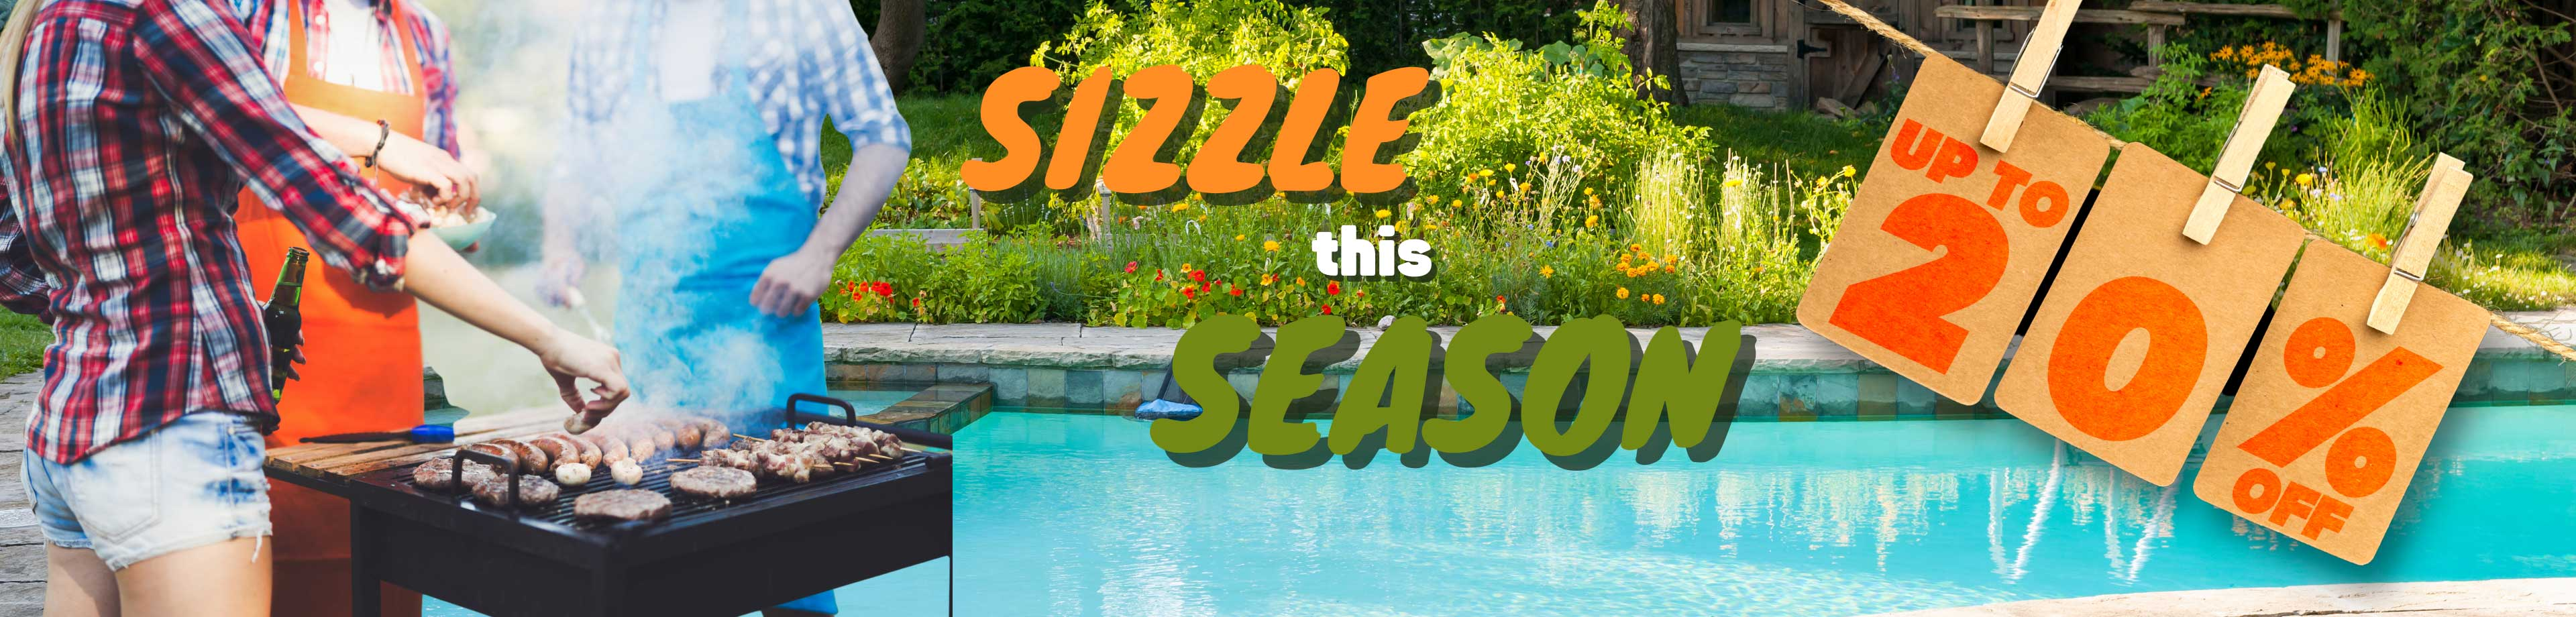 Sizzle This Season with Up To 20% Off Custom BBQ Tools and Promotional Products for Picnics & Patio Parties!